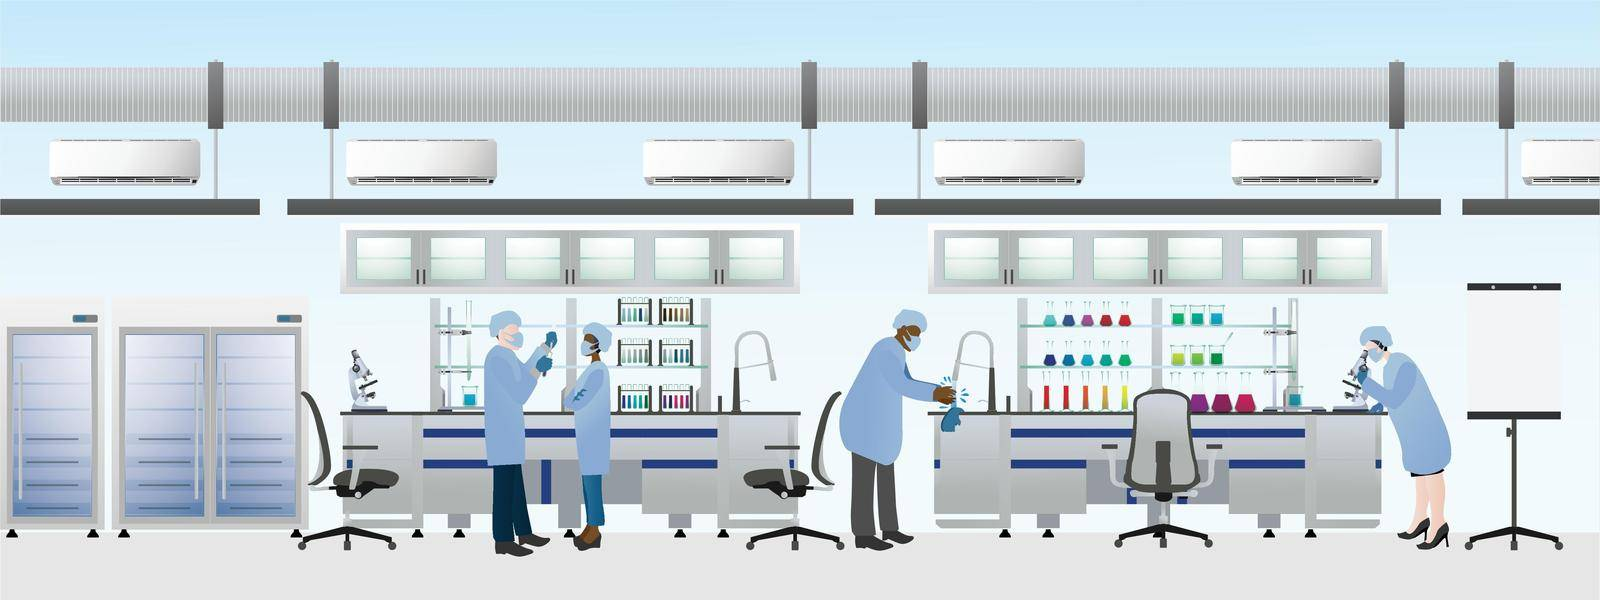 Scientists team wearing laboratory suit for making chemical experiments, Science lab flat vector illustration.